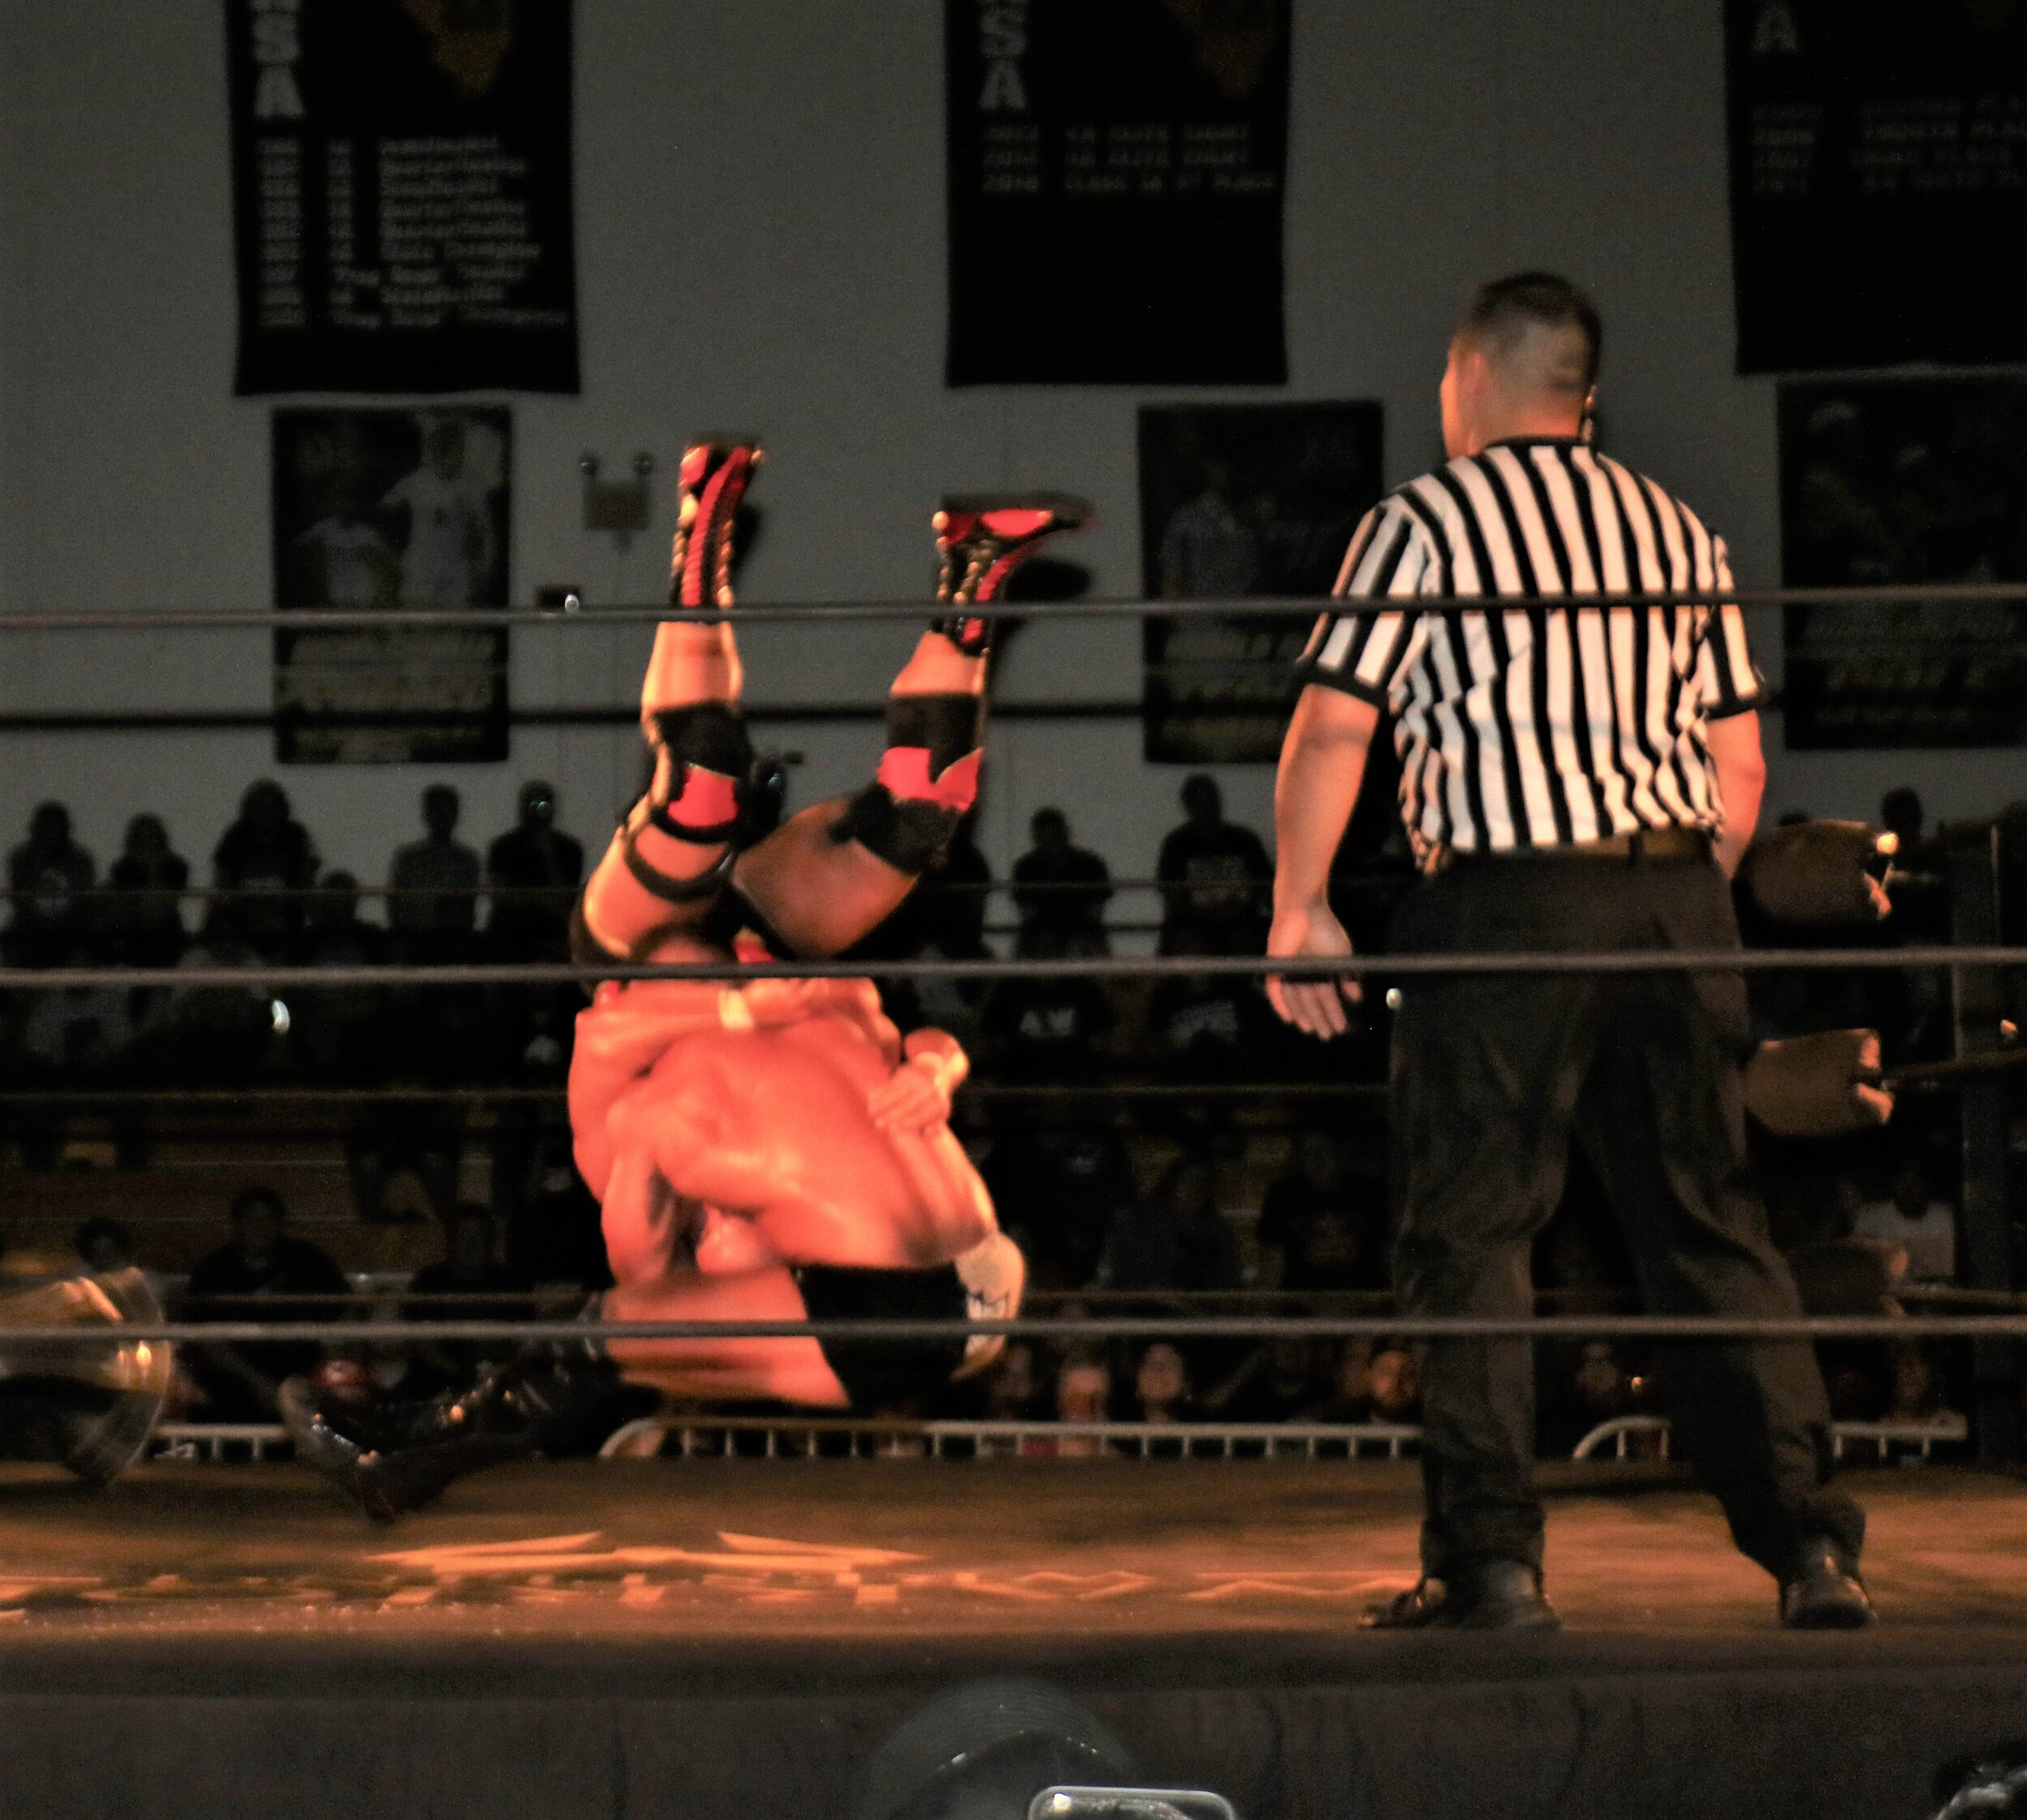 Brian Cage hits the Drill Claw on Michael Elgin, leading to the pin on Michael Elgin to retain the Warrior Wrestling Championship.